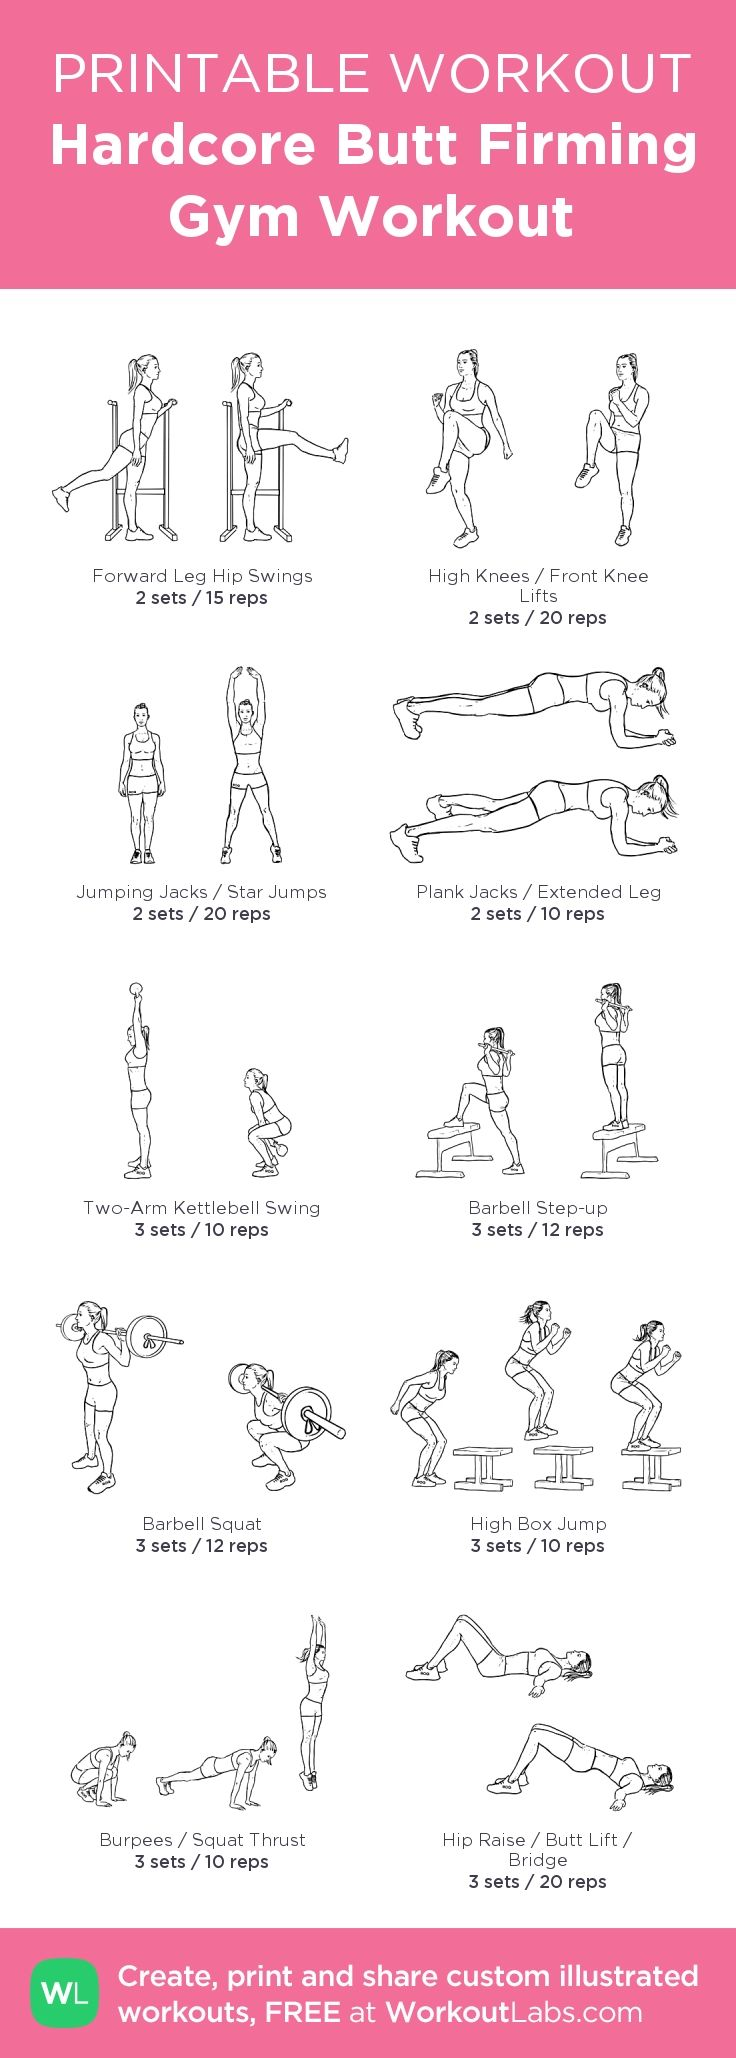 Hardcore Butt Firming Gym Illustrated Workout for Women • Click to customize and download a FREE PDF! #customworkout #weightlossbeforeandafter